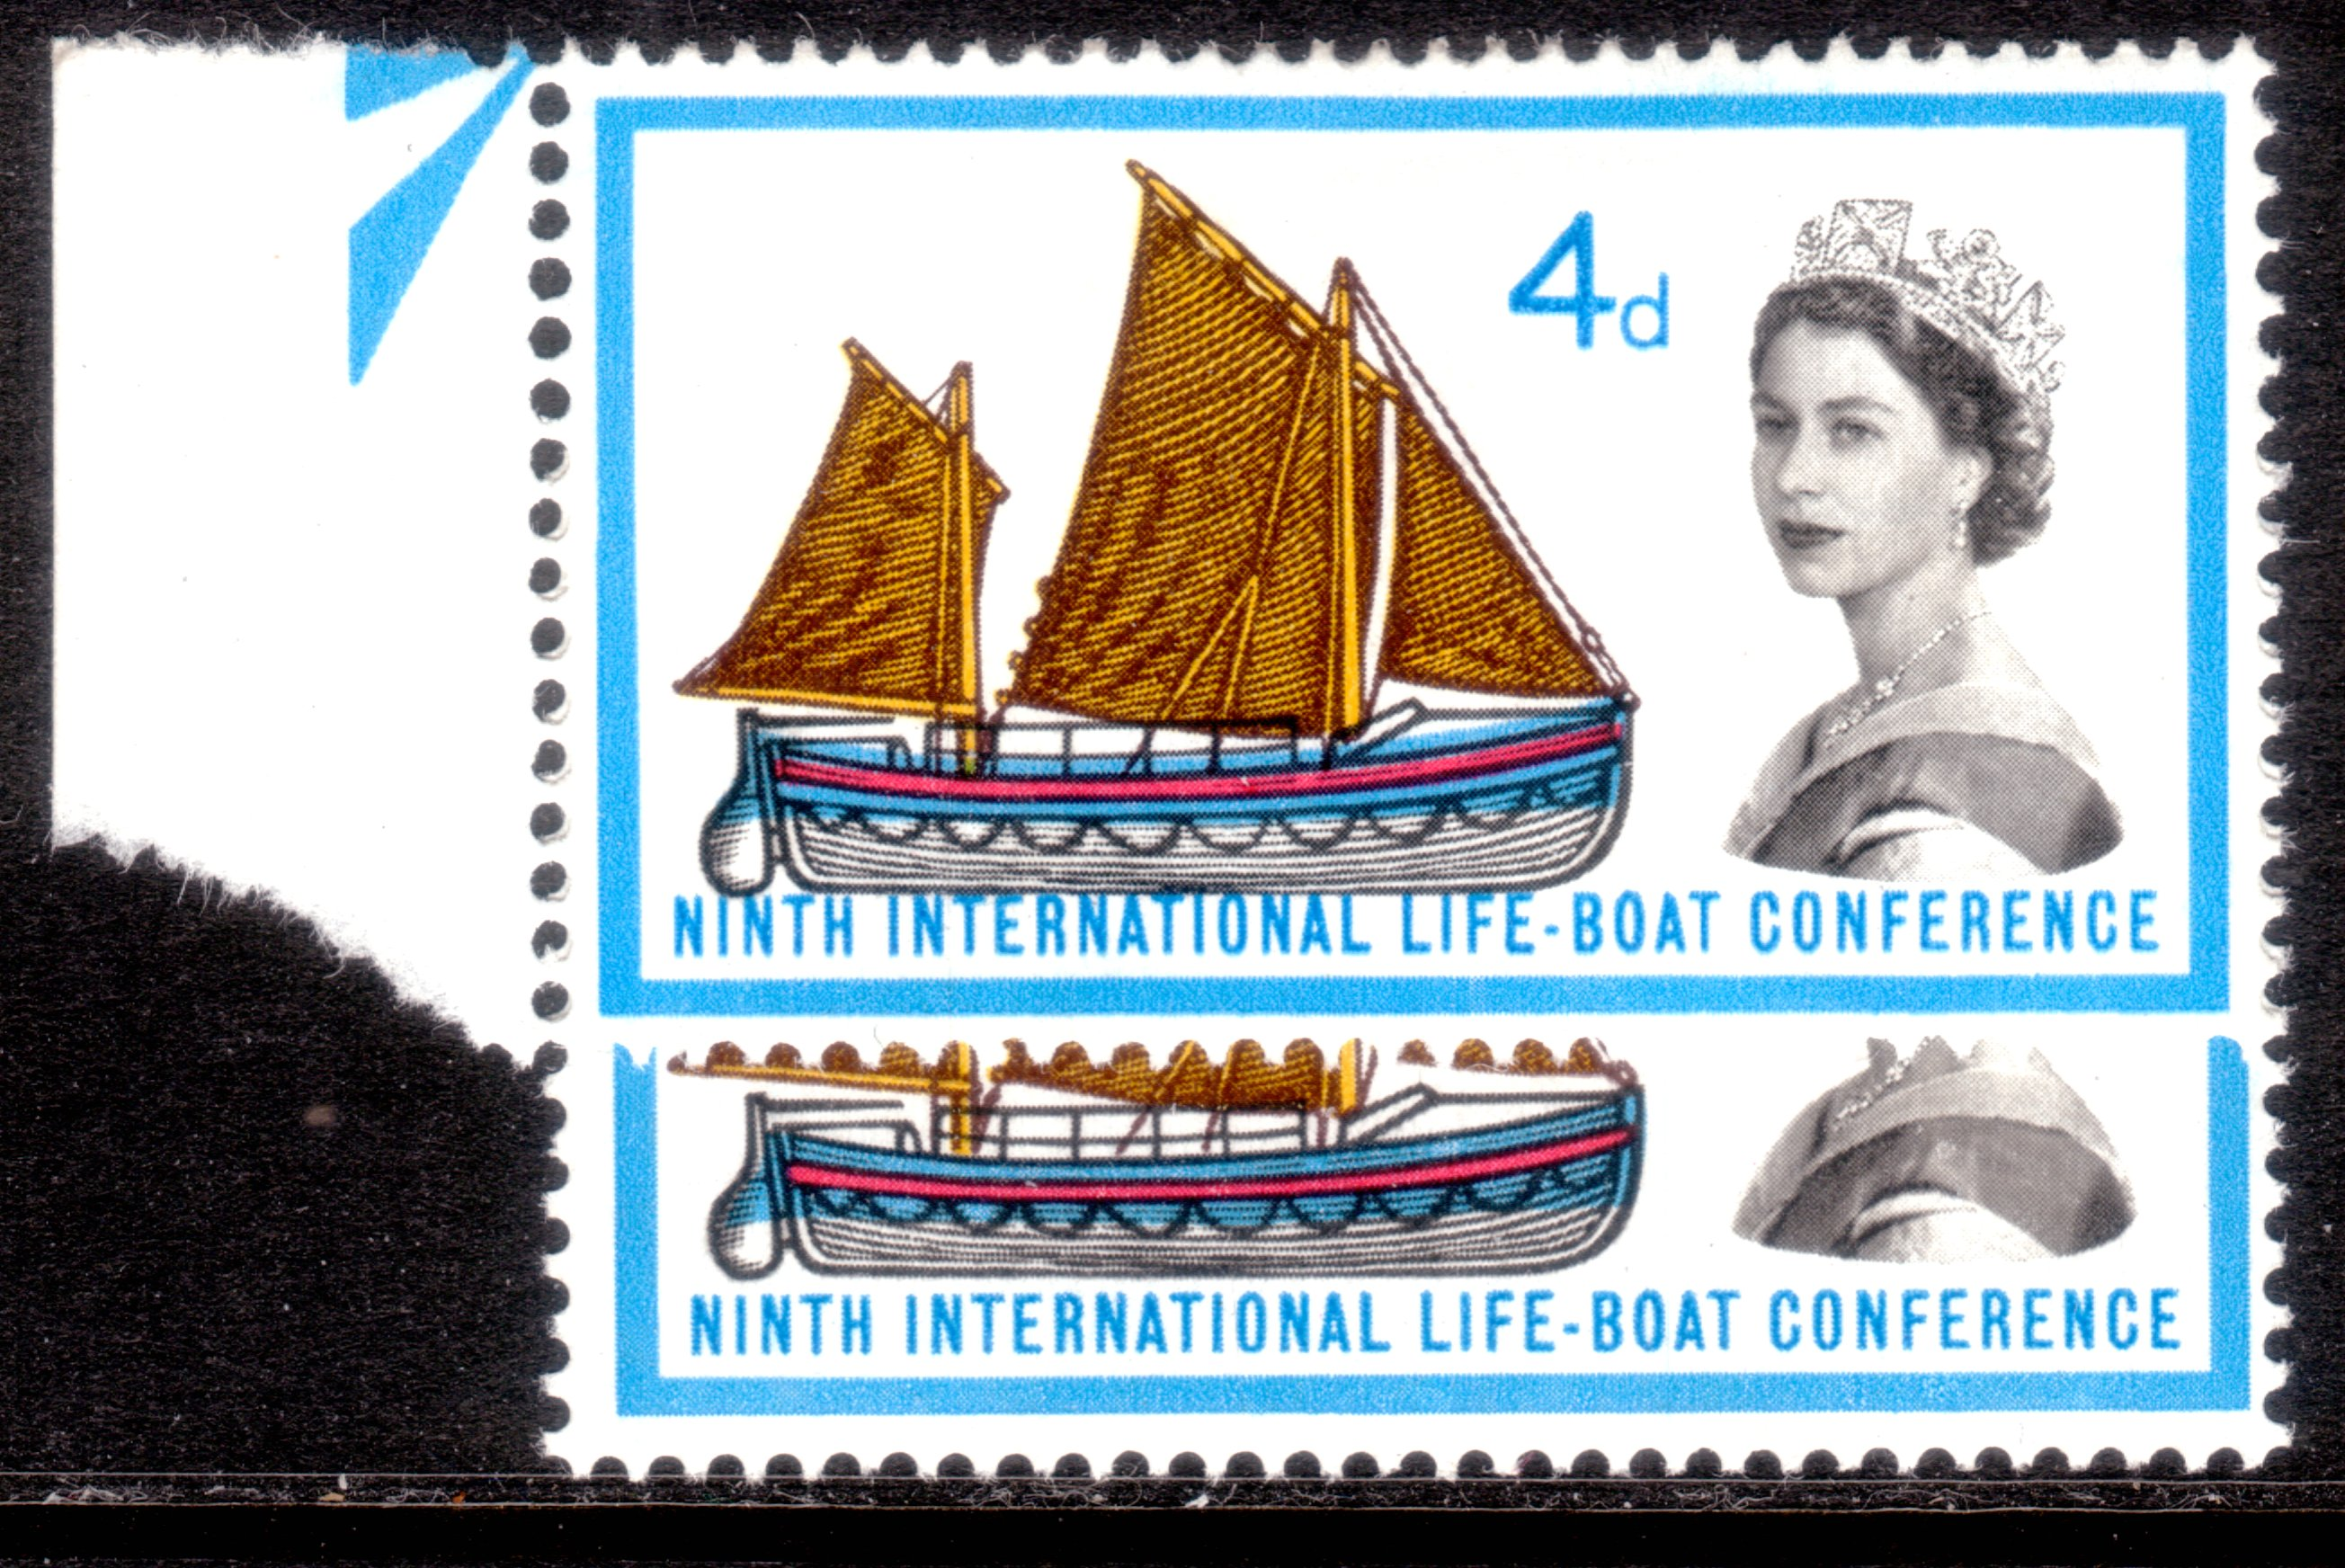 1963 4d LIFEBOAT CONFERENCE MARGINAL MINT WITH BLUE & RED SHIFT VARIETY UPWARD